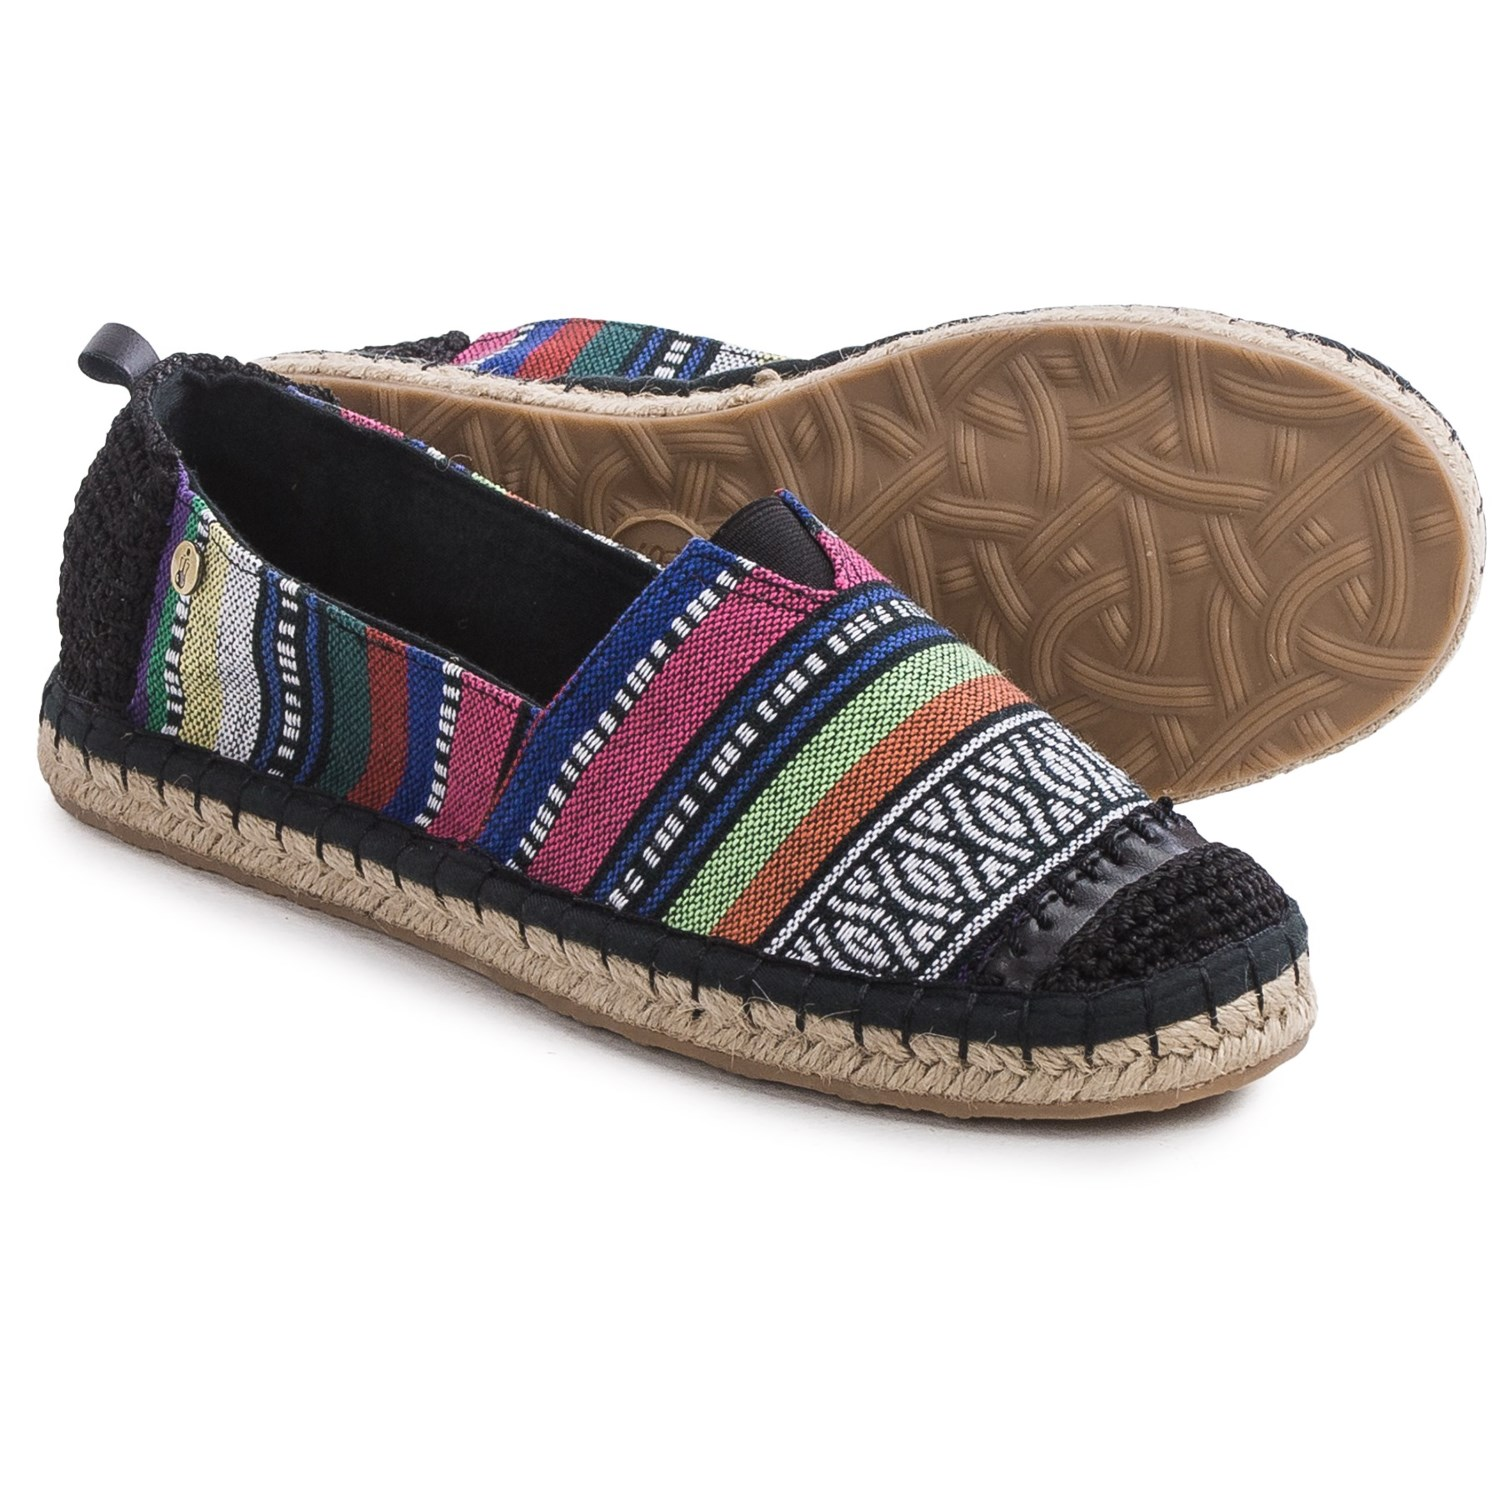 the sak ella flat espadrilles for women   save 65